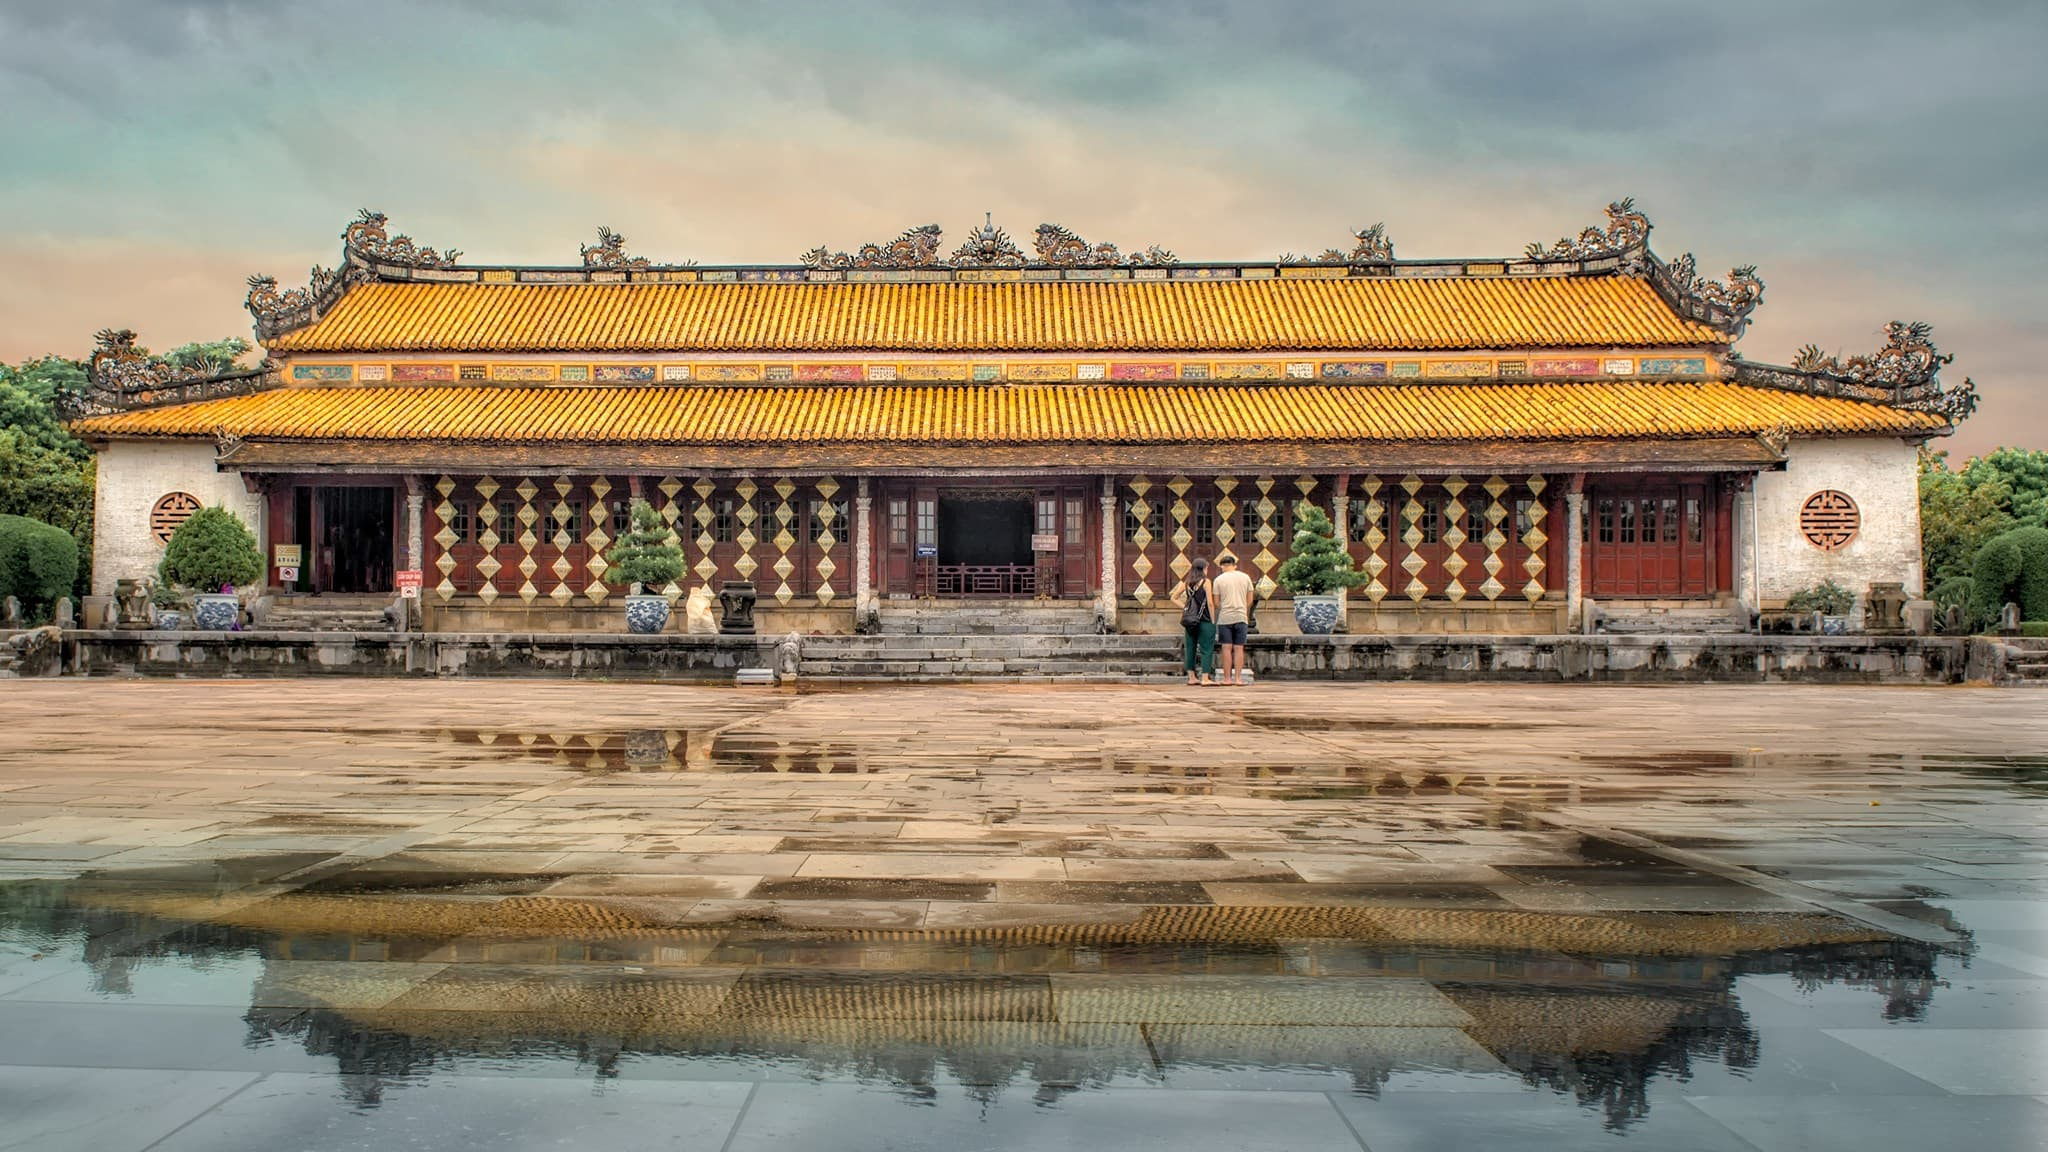 Thai Hoa Palace- Hue imperial city